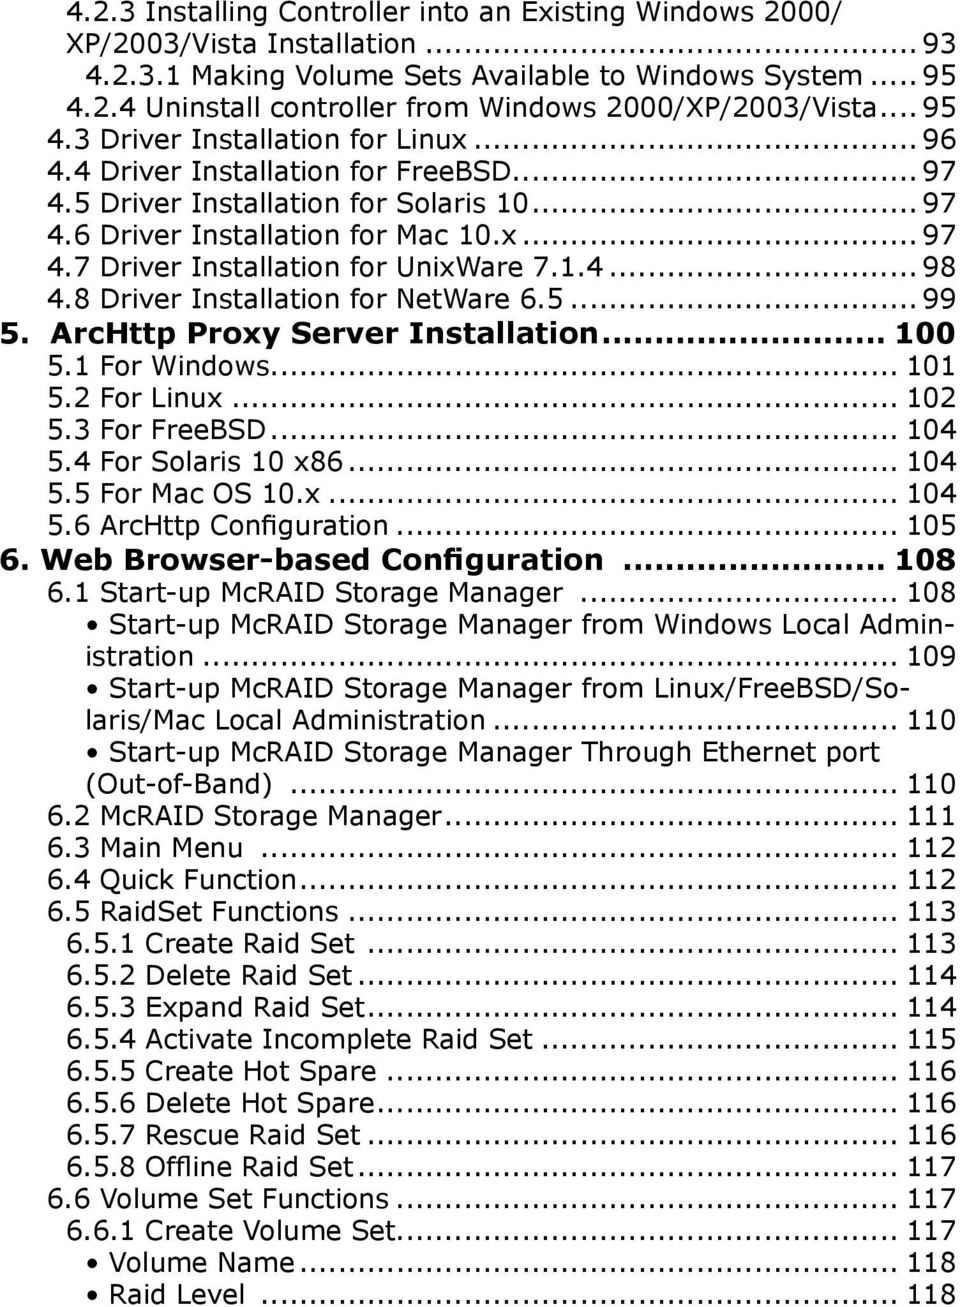 1.4... 98 4.8 Driver Installation for NetWare 6.5... 99 5. ArcHttp Proxy Server Installation... 100 5.1 For Windows... 101 5.2 For Linux... 102 5.3 For FreeBSD... 104 5.4 For Solaris 10 x86... 104 5.5 For Mac OS 10.